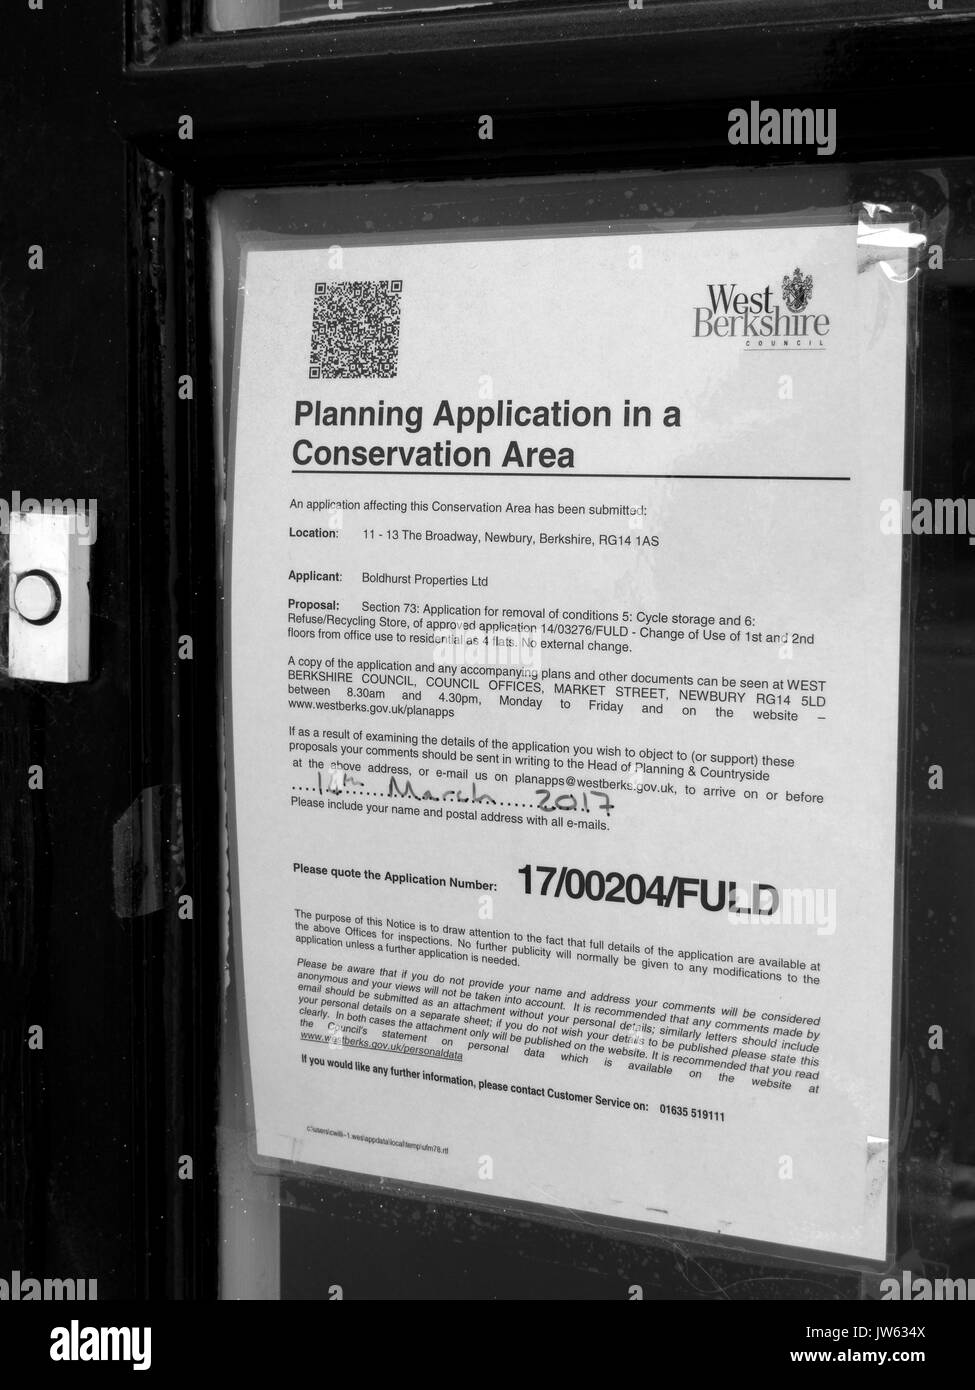 West Berkshire Council planning application in conservation area notice in retail shop window - Stock Image